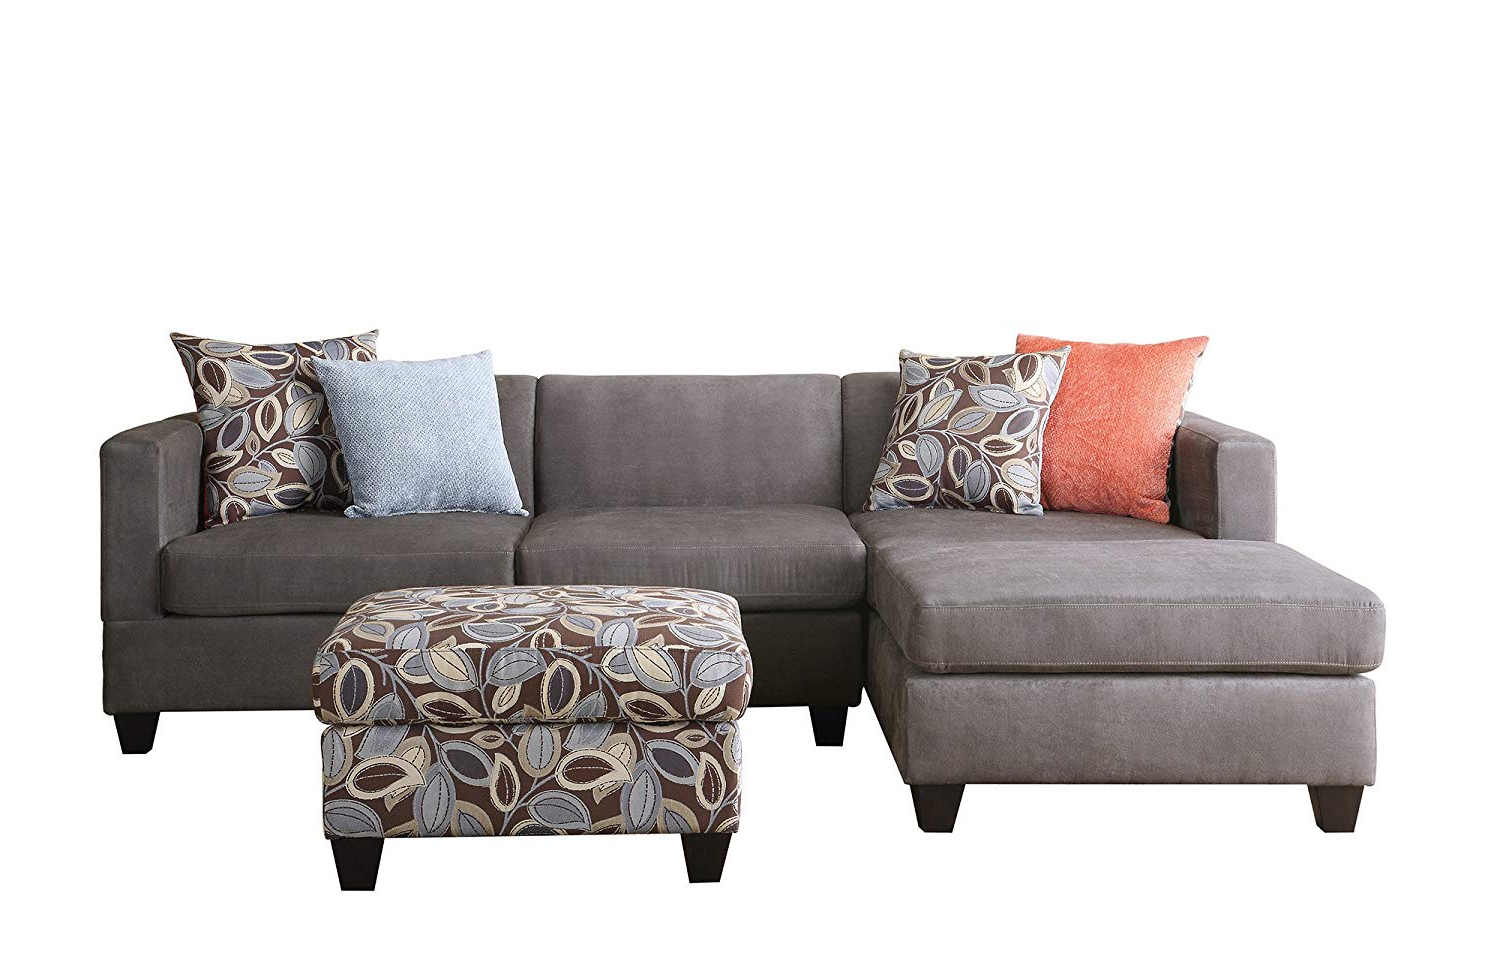 2 Piece Sectional With Chaise – Tidex Inside Most Recently Released Arrowmask 2 Piece Sectionals With Laf Chaise (View 1 of 20)